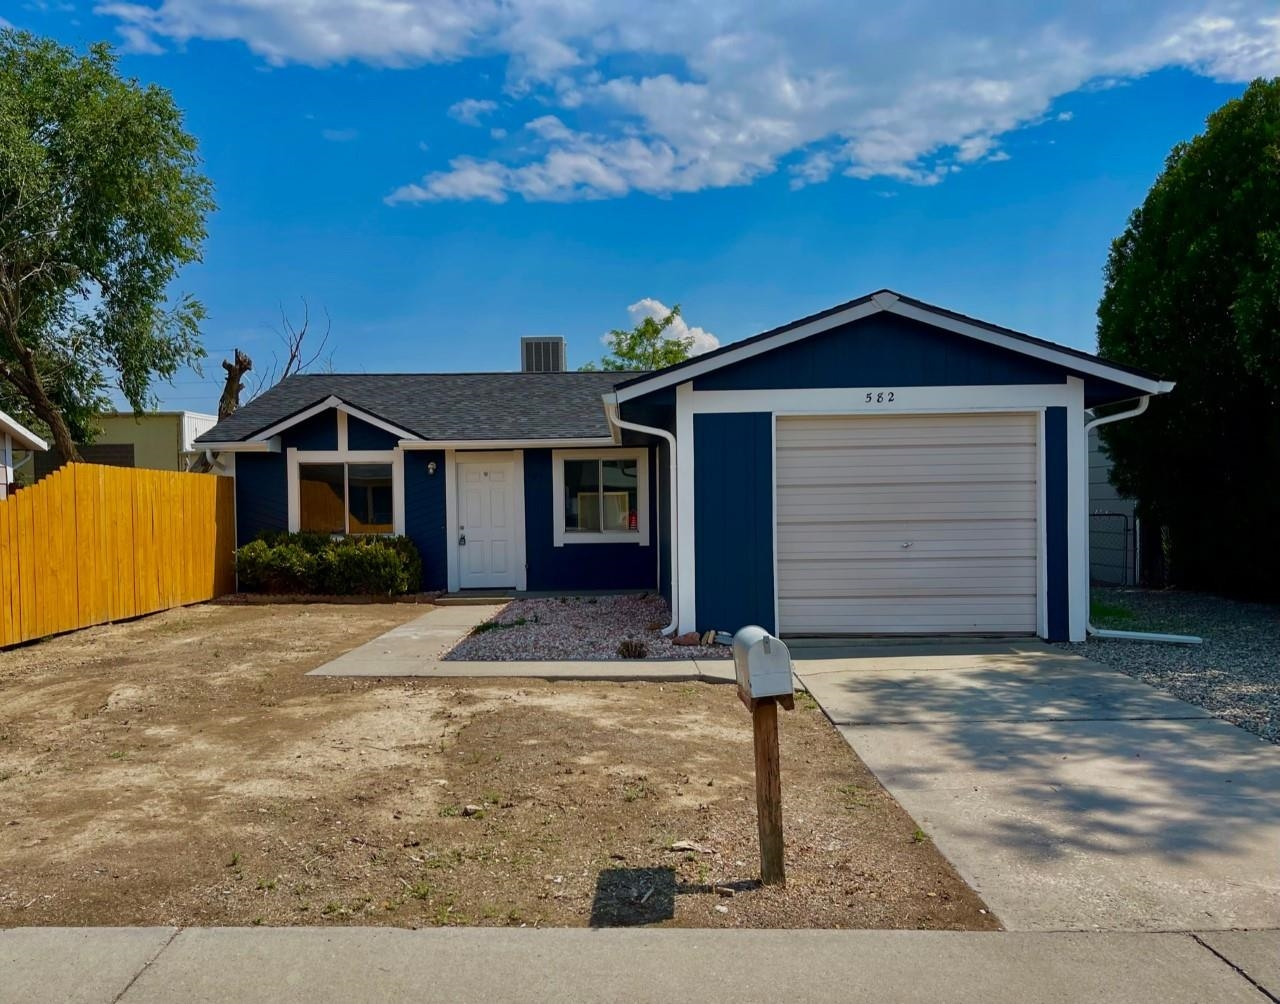 Nicely remodeled home! Remodel includes all new kitchen cabinets and new stainless appliances, new vanity in the bathroom, new roof, new evaporative cooler, new door to back yard and of course all new flooring and paint!. Tankless water heater.  Sellers are licensed RE Brokers in Colorado.